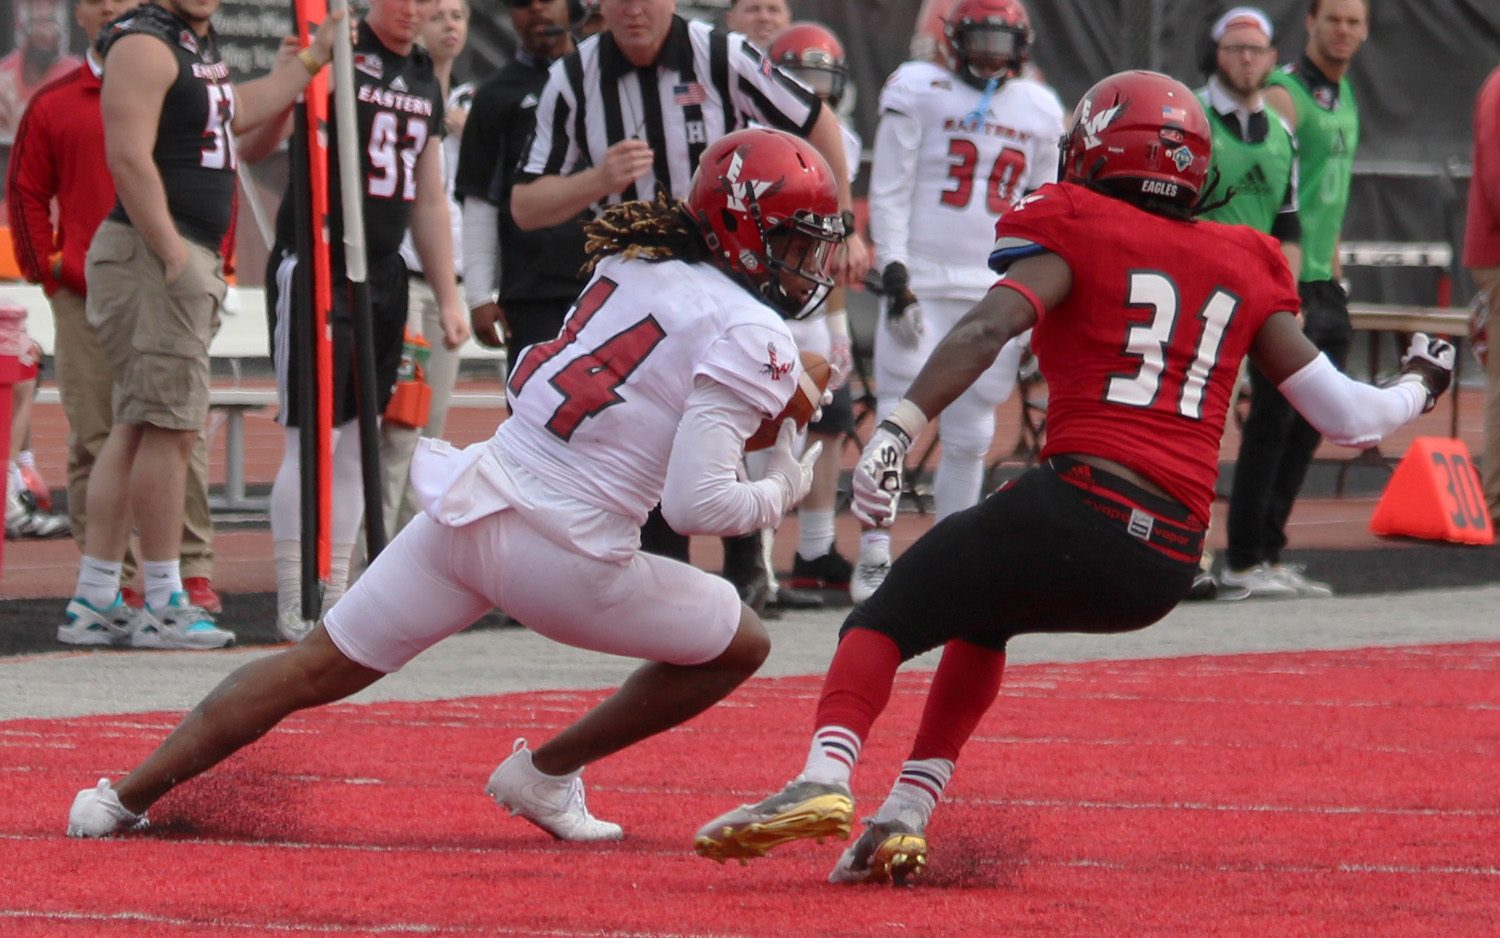 Wide receiver Jayson Williams (14) makes a catch and tries to get around defensive back Brandon Montgomery (31), at the Red-White spring game.